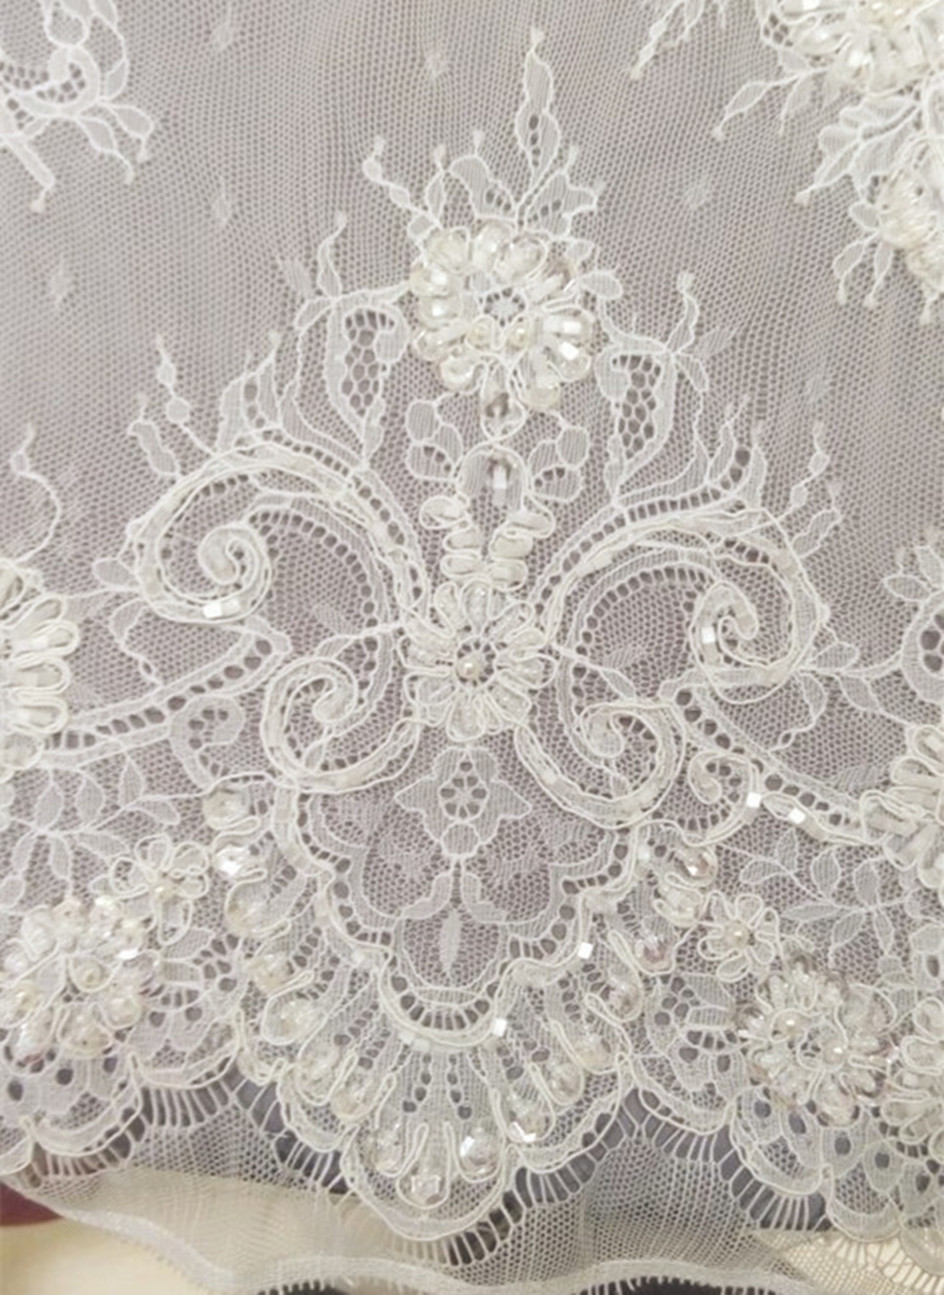 Luxury Bridal Dress Lace Material 3yards Pc Embroidery Sequins Heavy Wedding Beaded Fabric For Formal In From Home Garden On